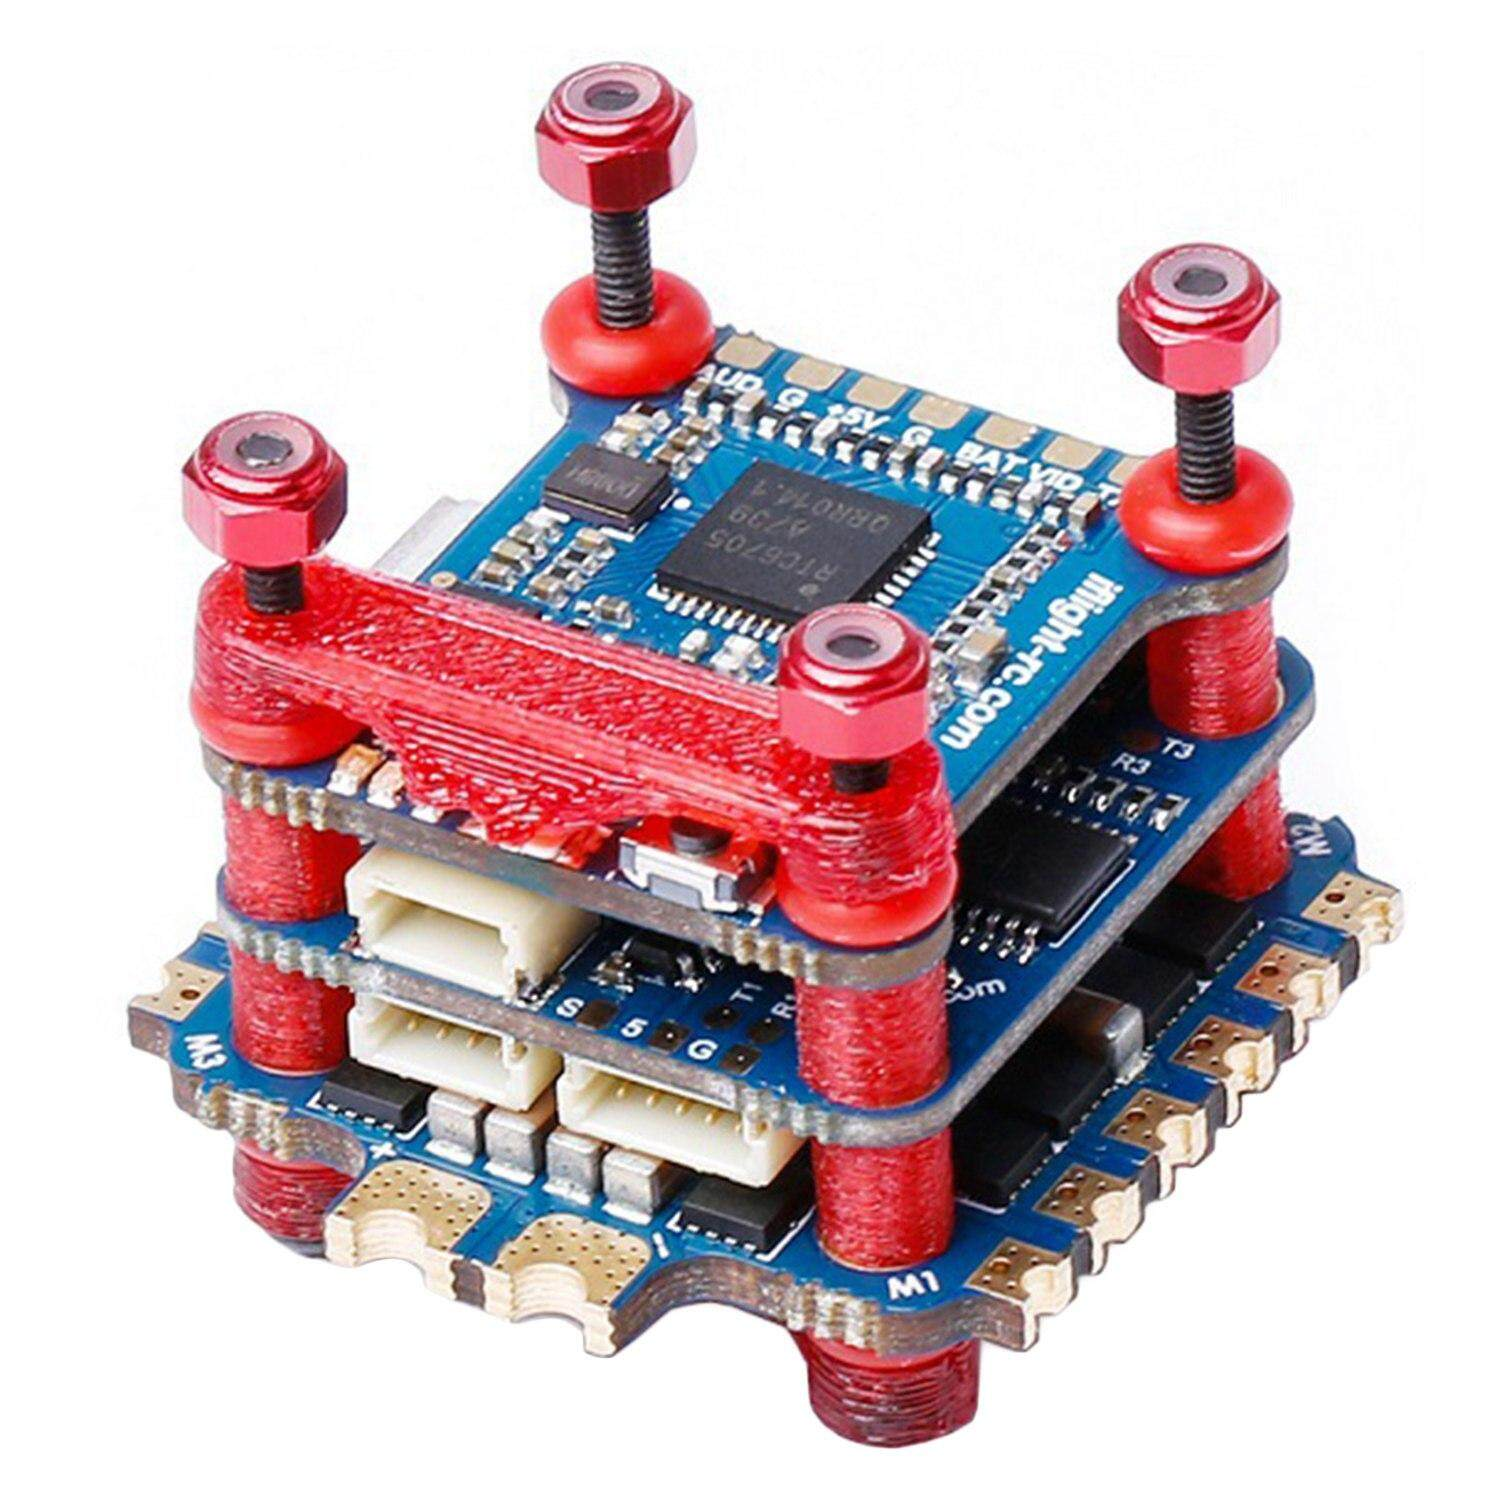 Iflight Succex V2 Mini F4 Flight Controller With Succex Blheli-32-Bit 35A 2-6S 4 In 1 Esc Fpv Flight Tower System For Fpv Rc Kit